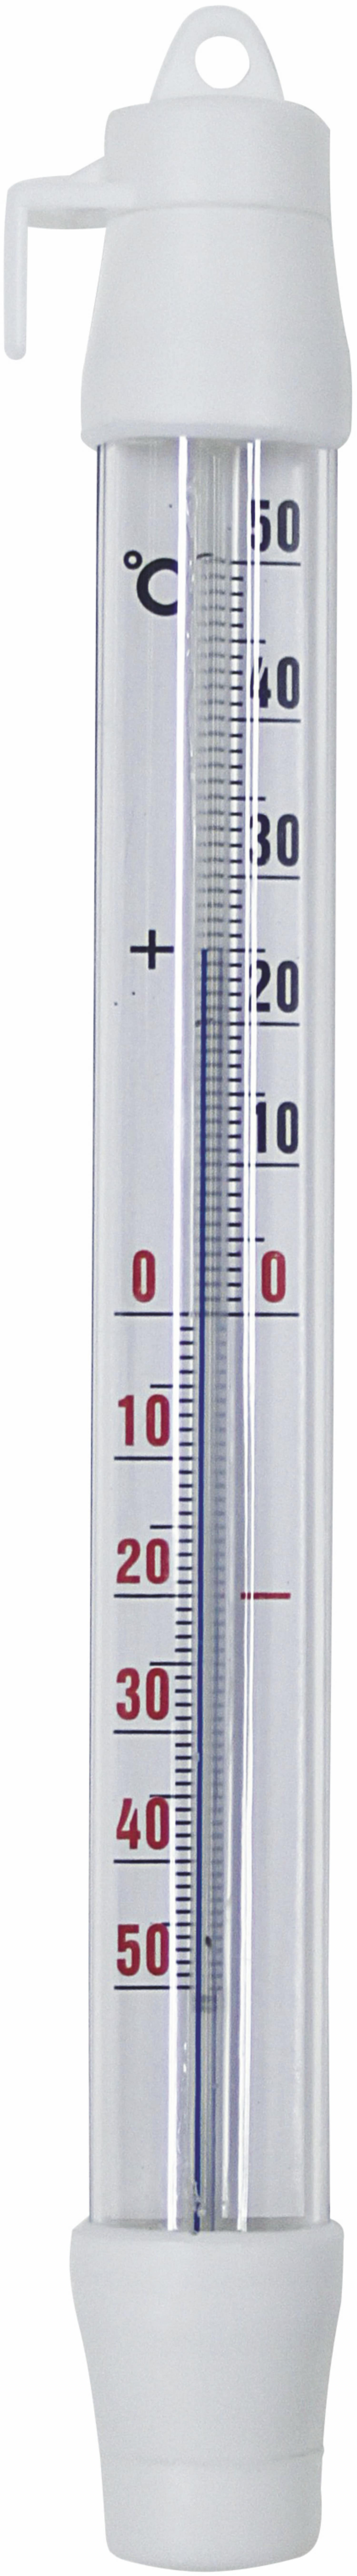 Thermometer 160026